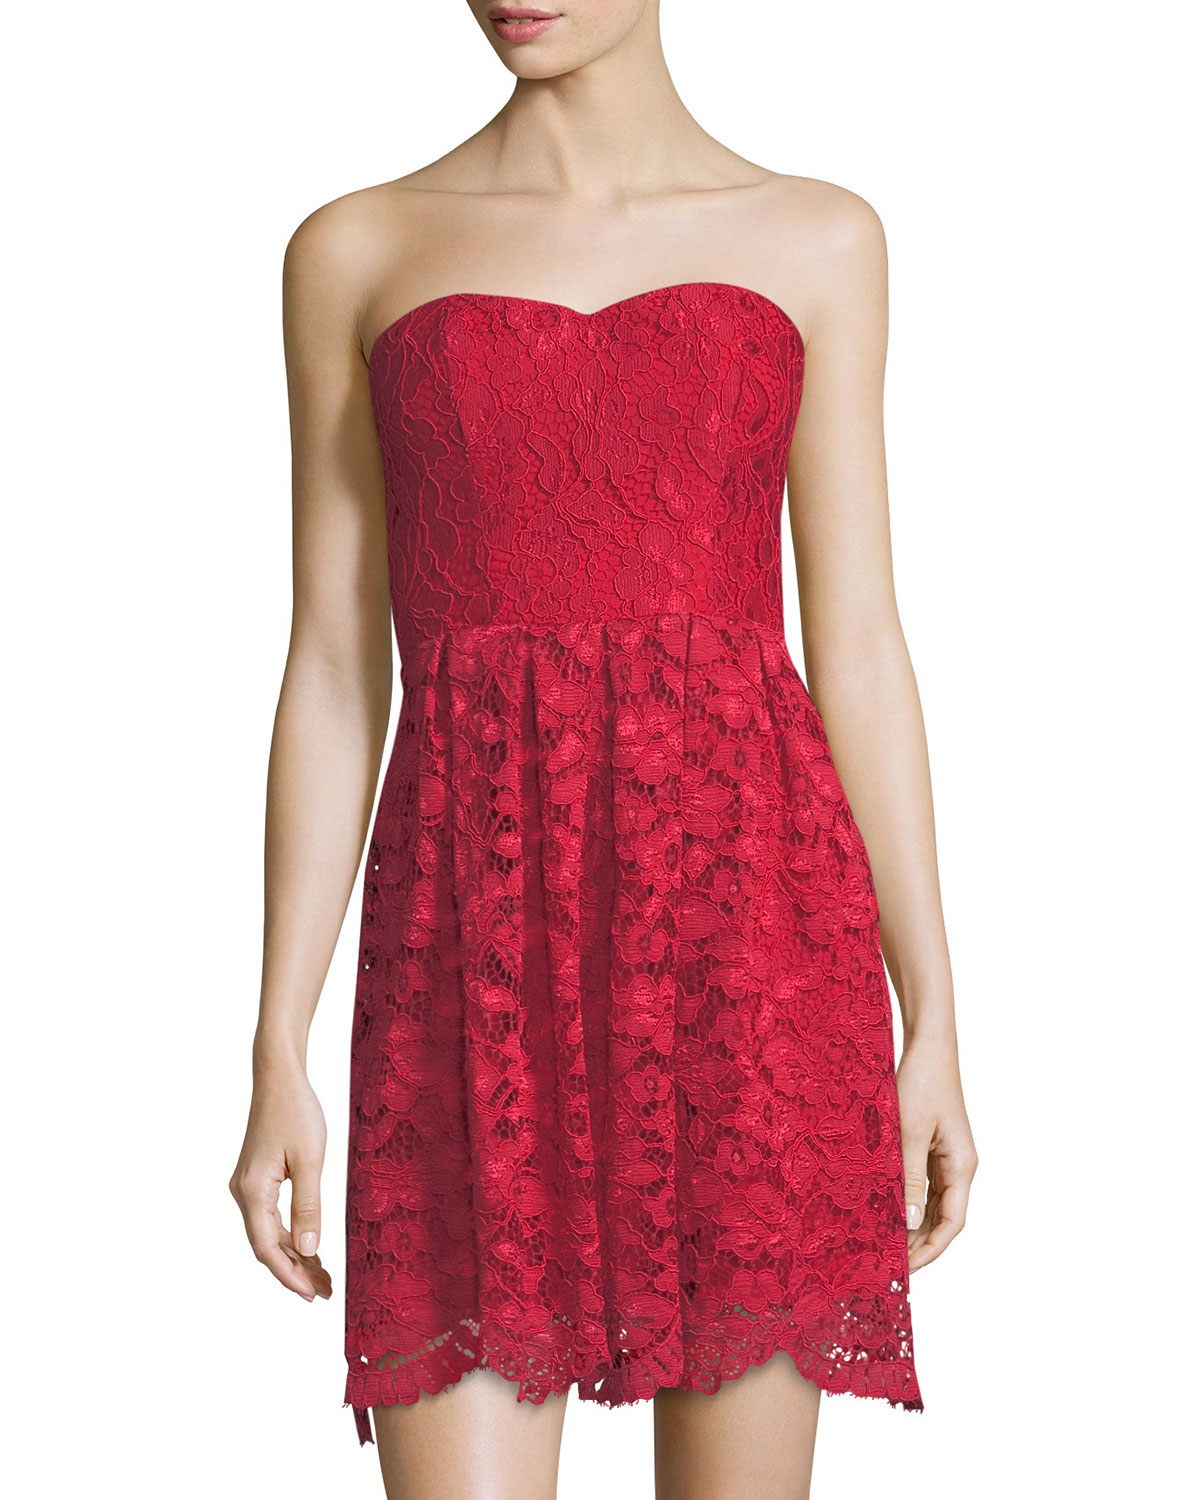 Lovers And Friends Smitten Strapless Lace Dress | Neiman ...